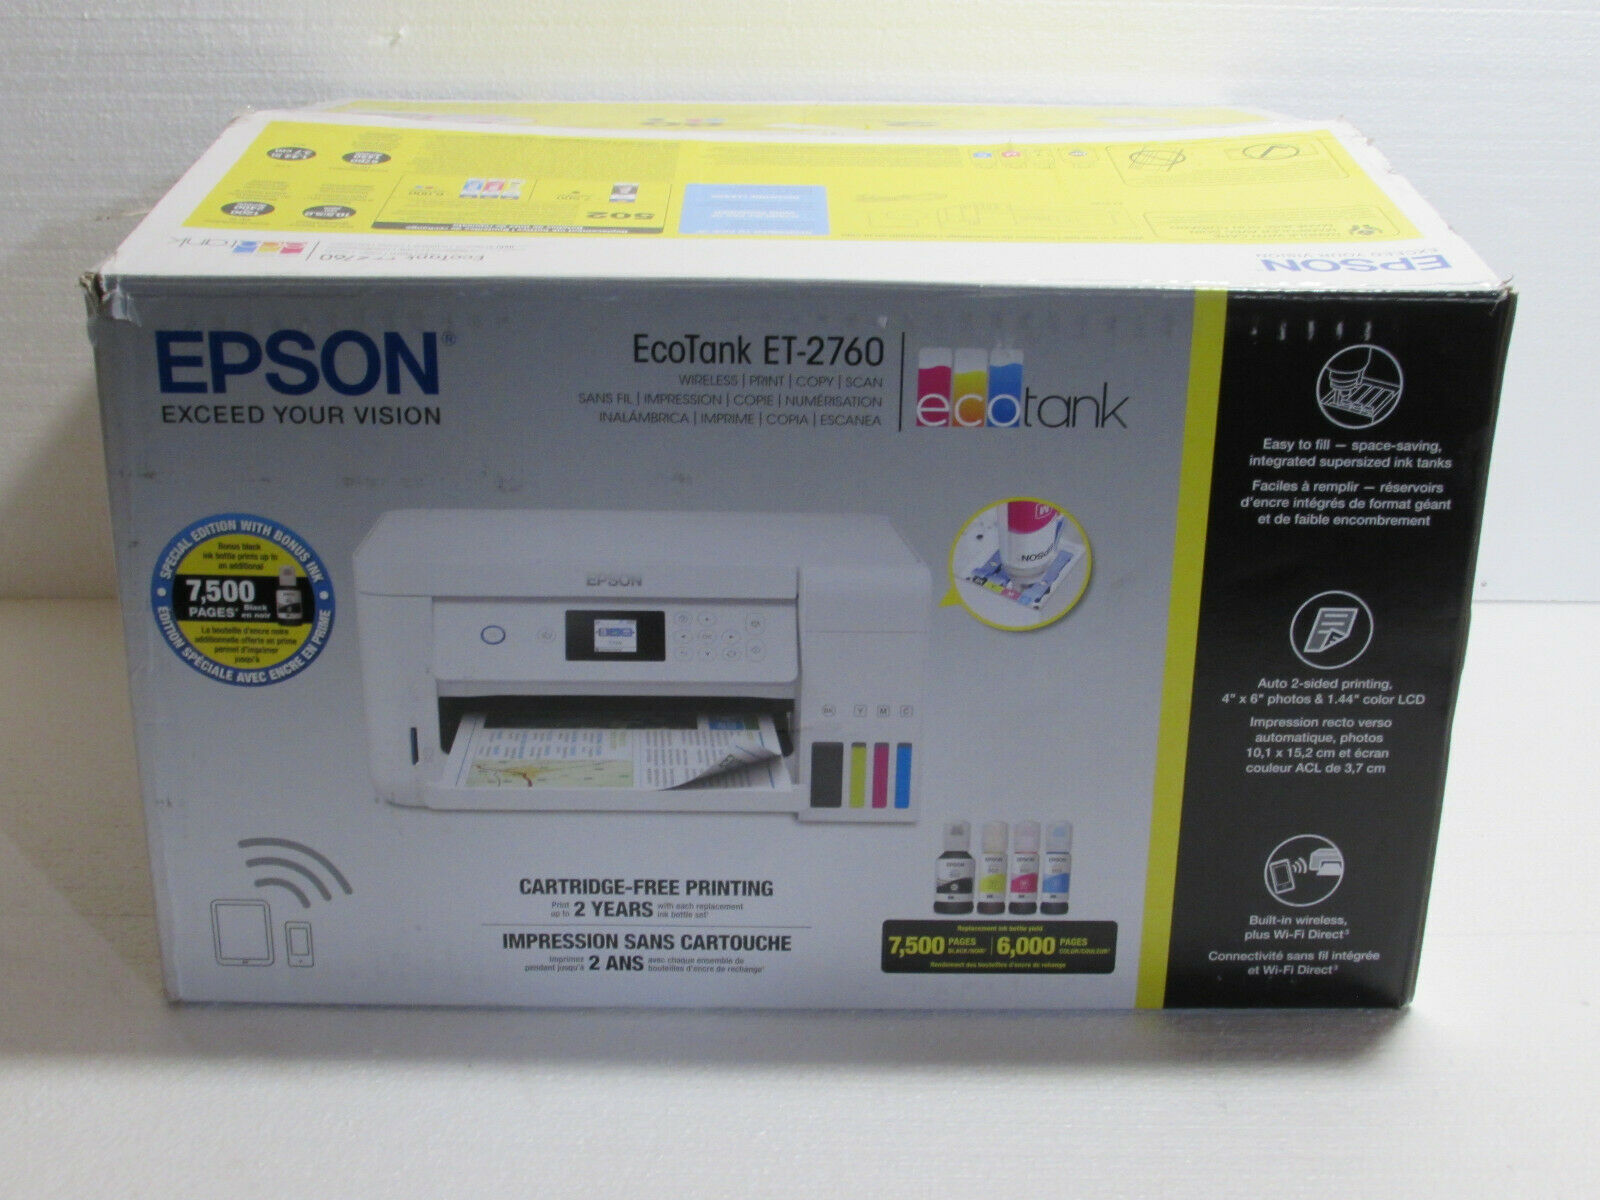 Epson EcoTank ET-2760 All-in-One Supertank Printer, Page Count 500 Or less. Buy it now for 200.00